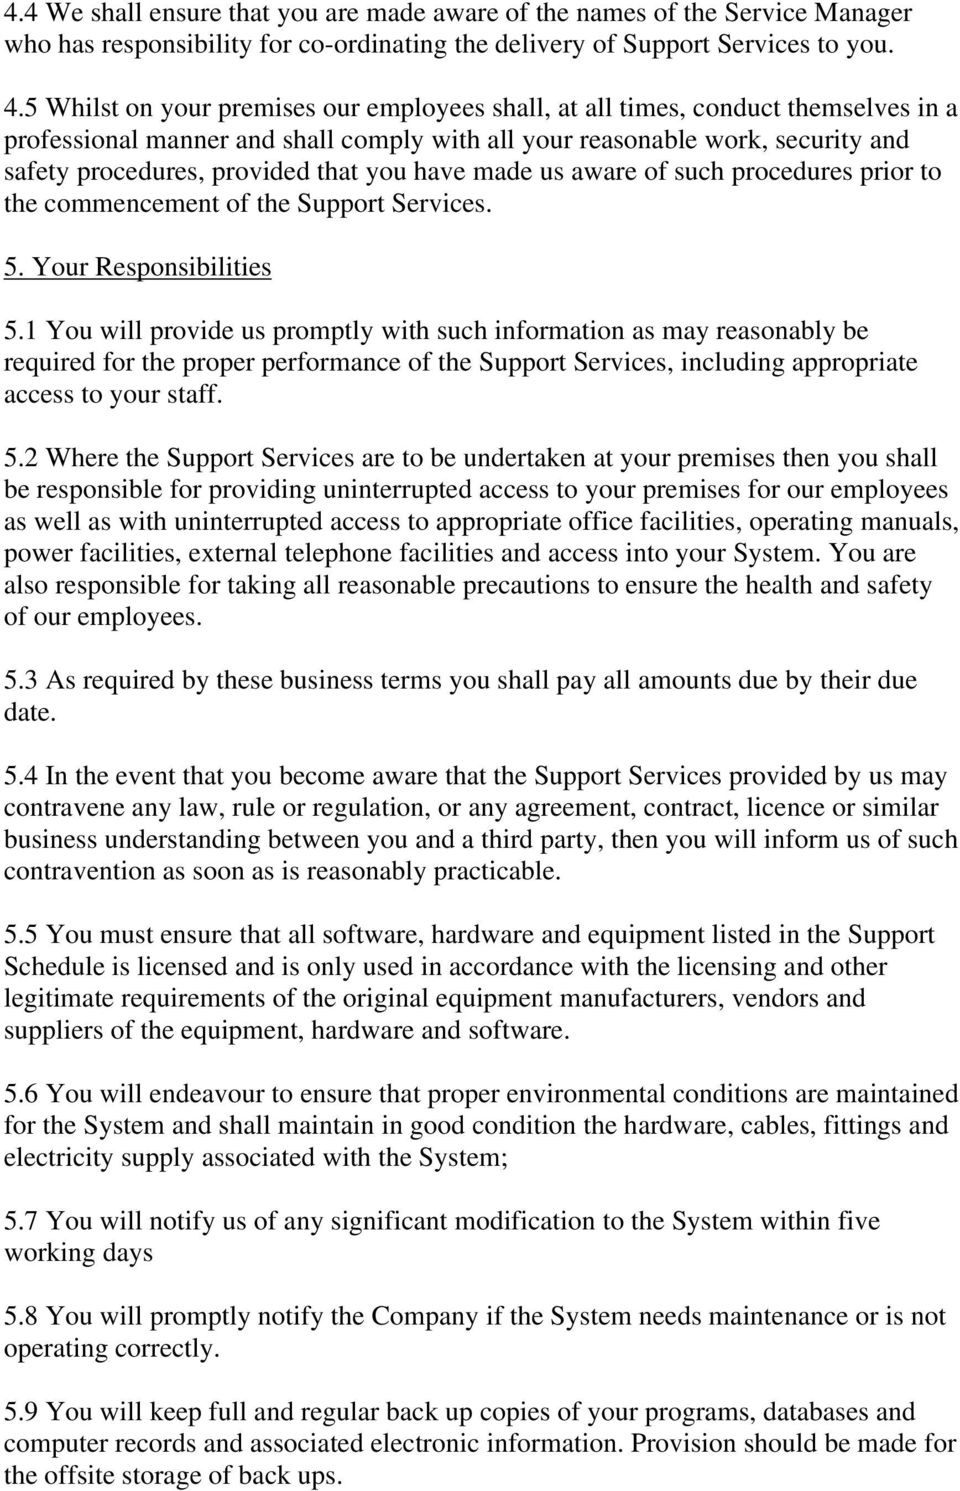 you have made us aware of such procedures prior to the commencement of the Support Services. 5. Your Responsibilities 5.